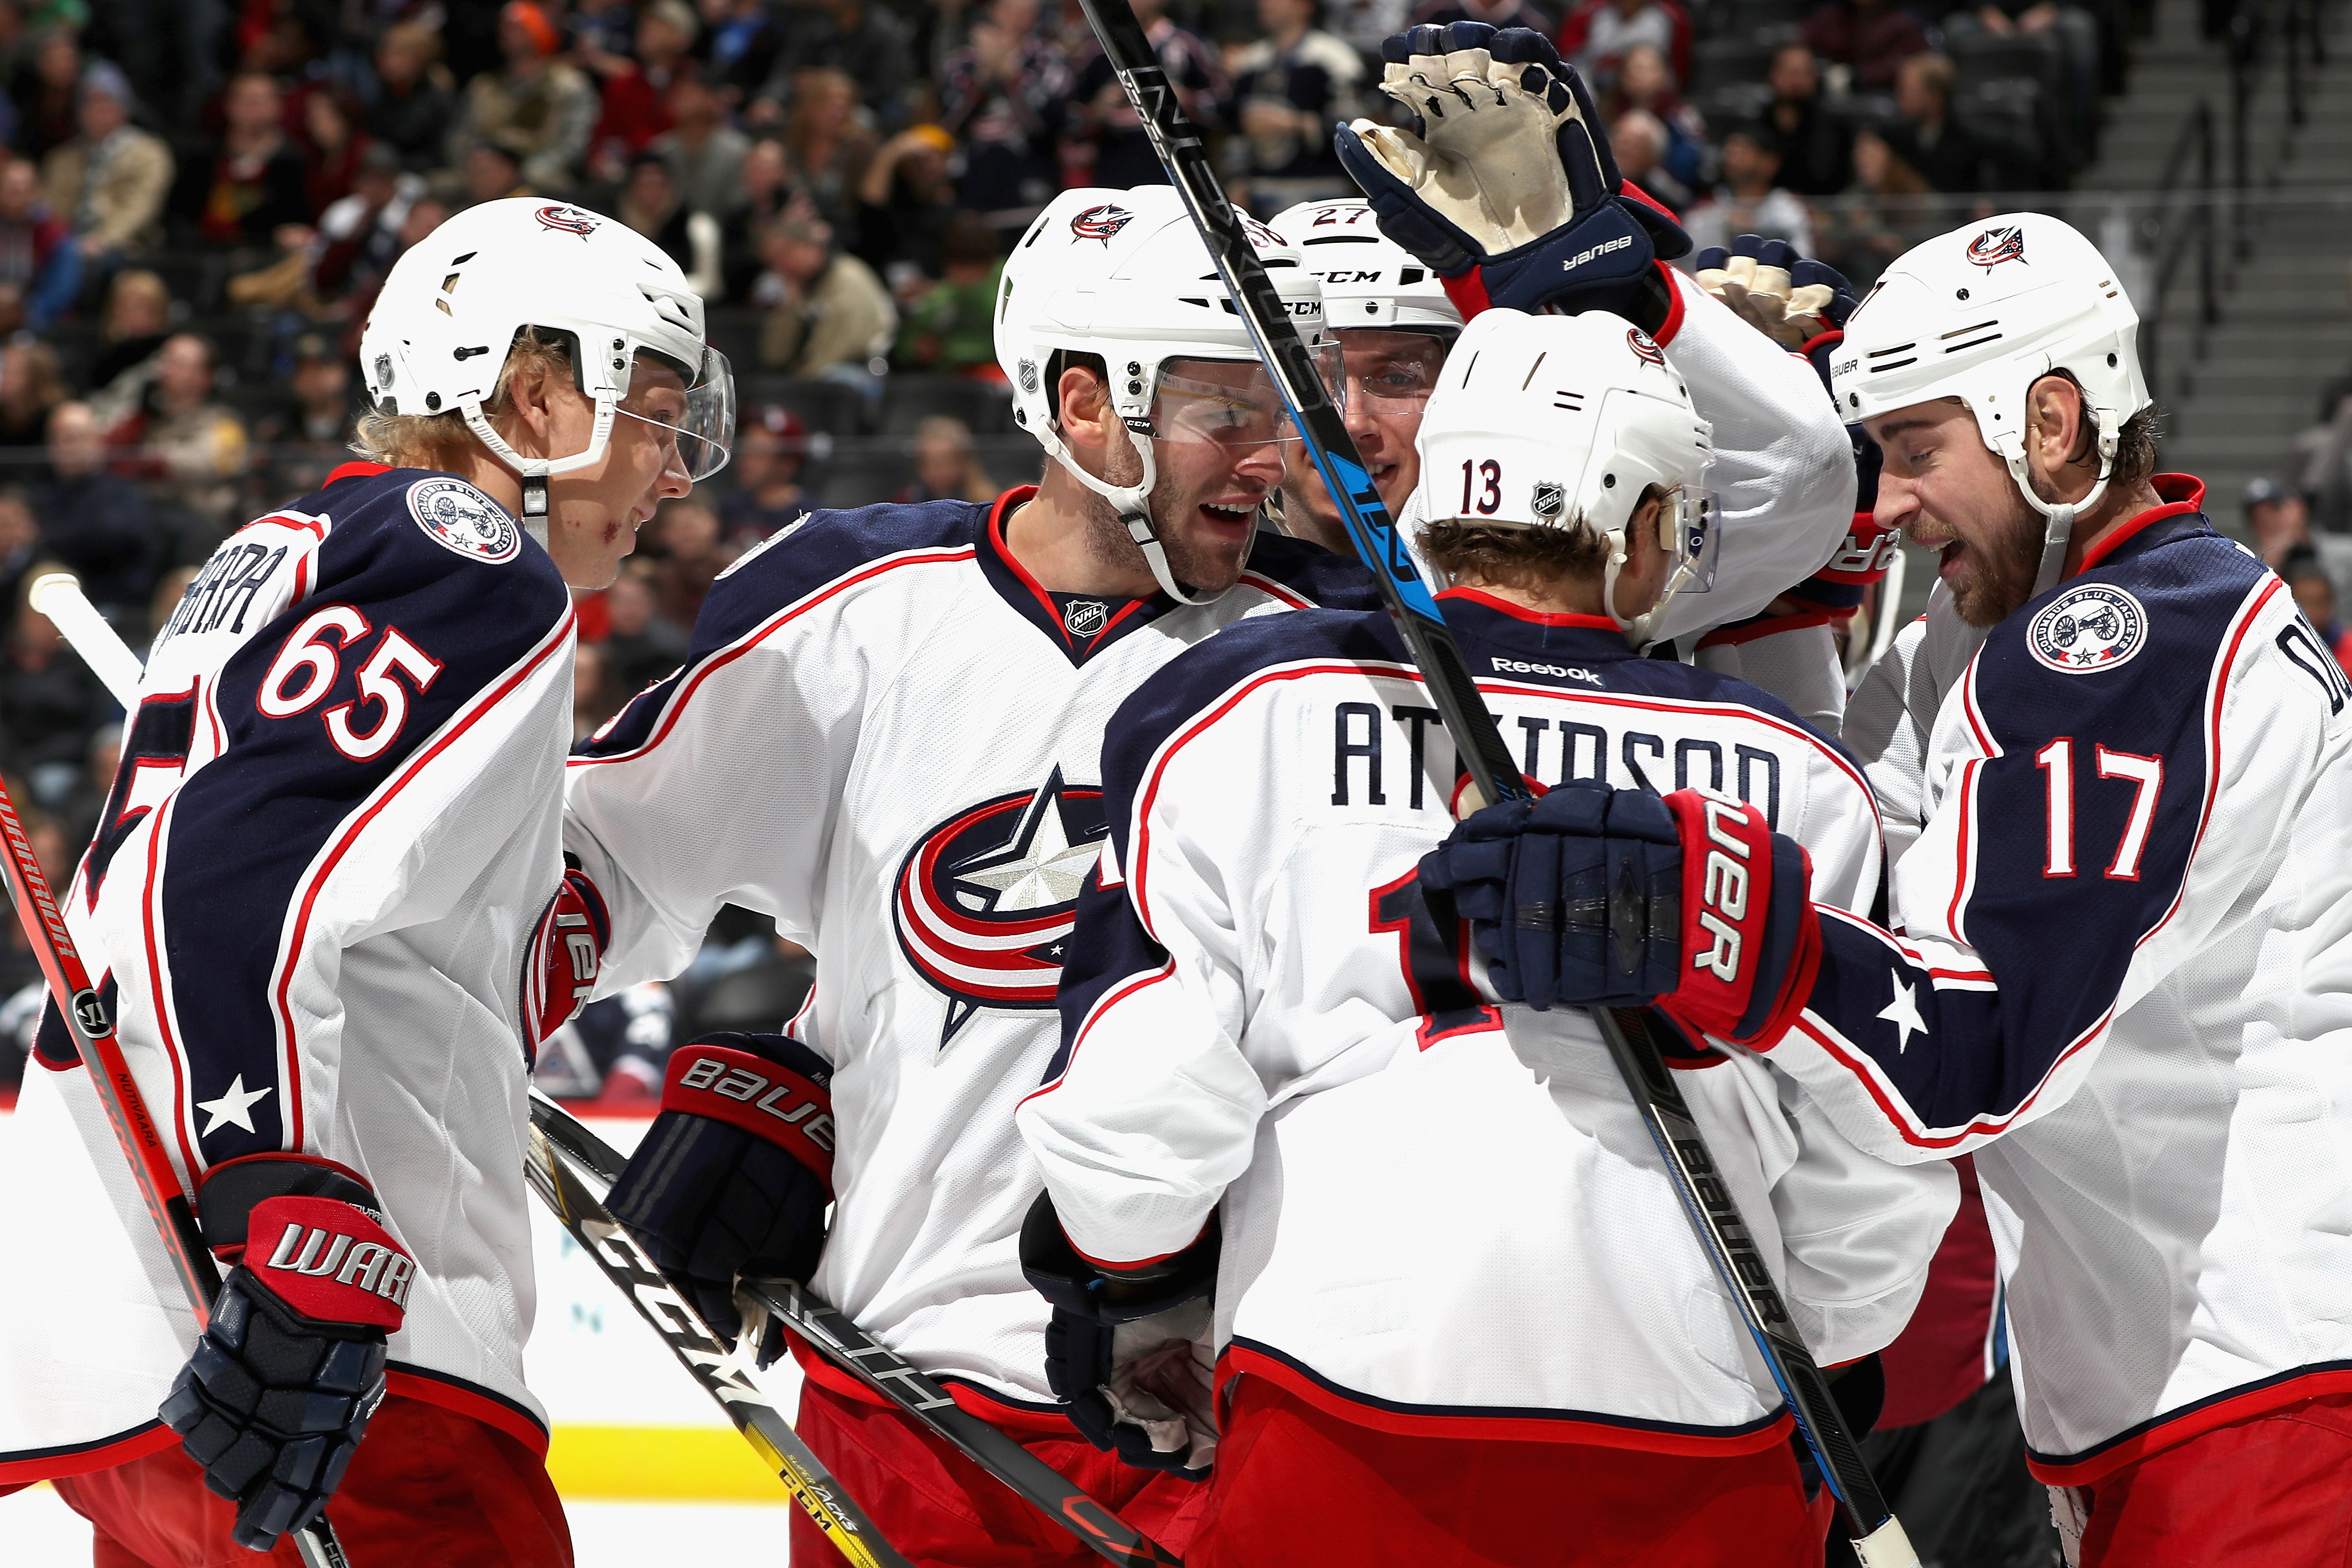 Blue Jackets are either good lucky or doomed - SBNation.com